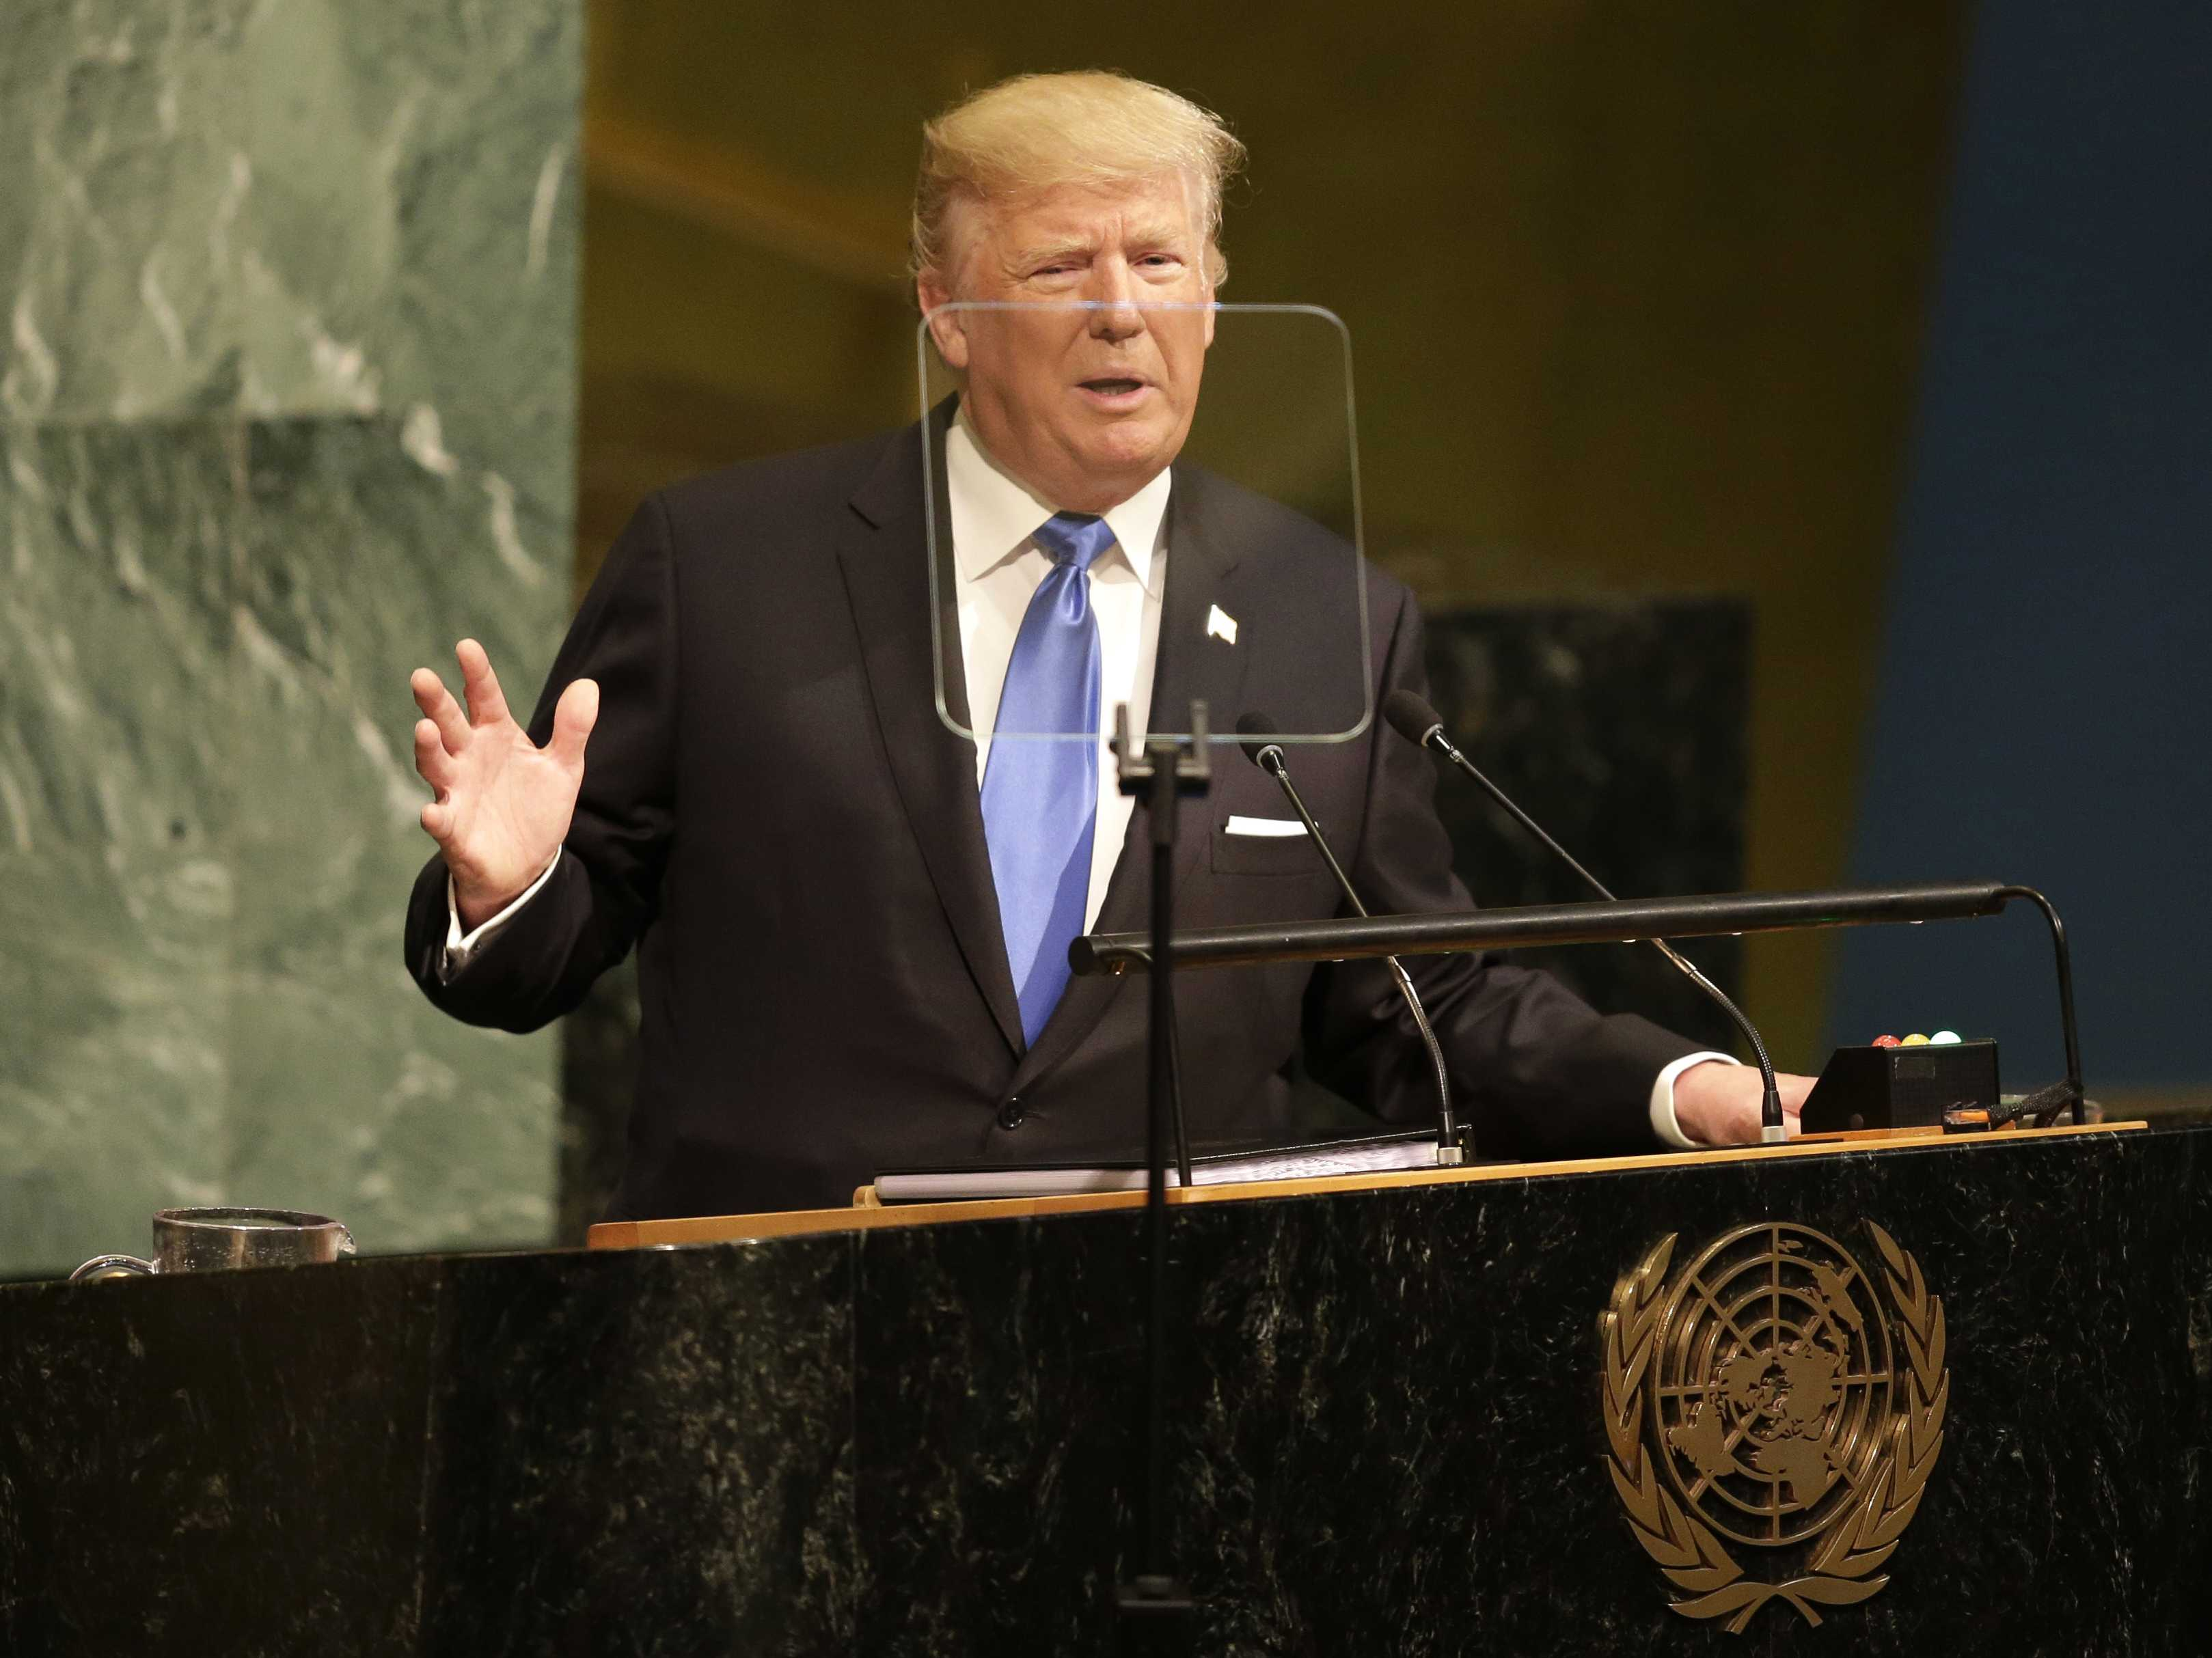 At UN, Trump Threatens 'Total Destruction' of North Korea